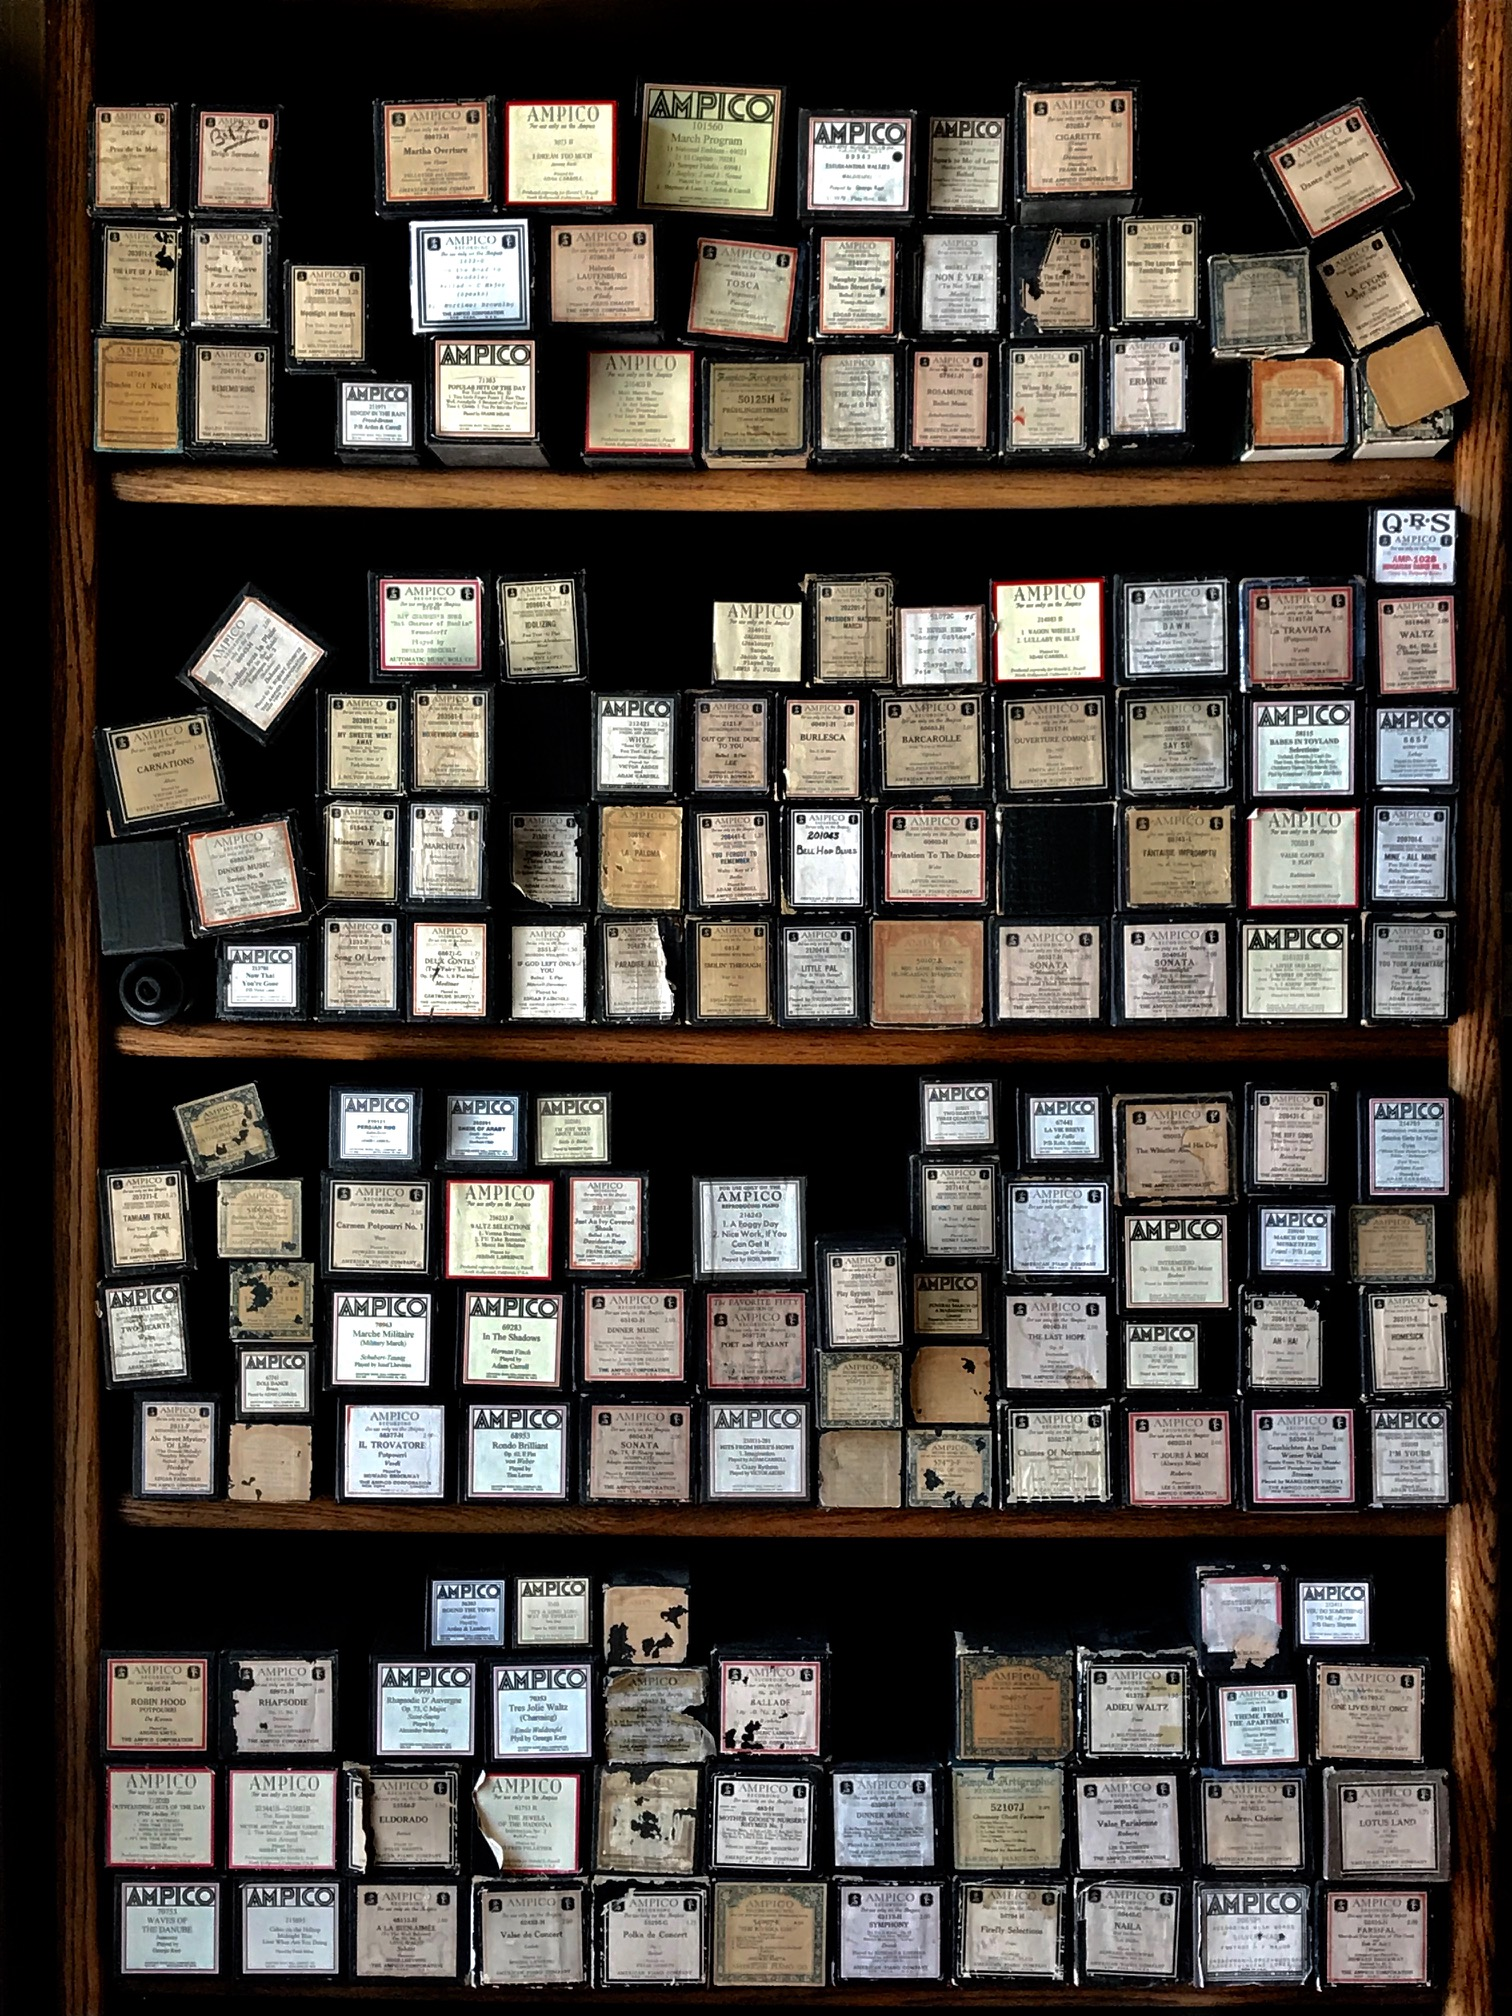 Bookcases around the restaurant are stocked with hundreds of player piano rolls.